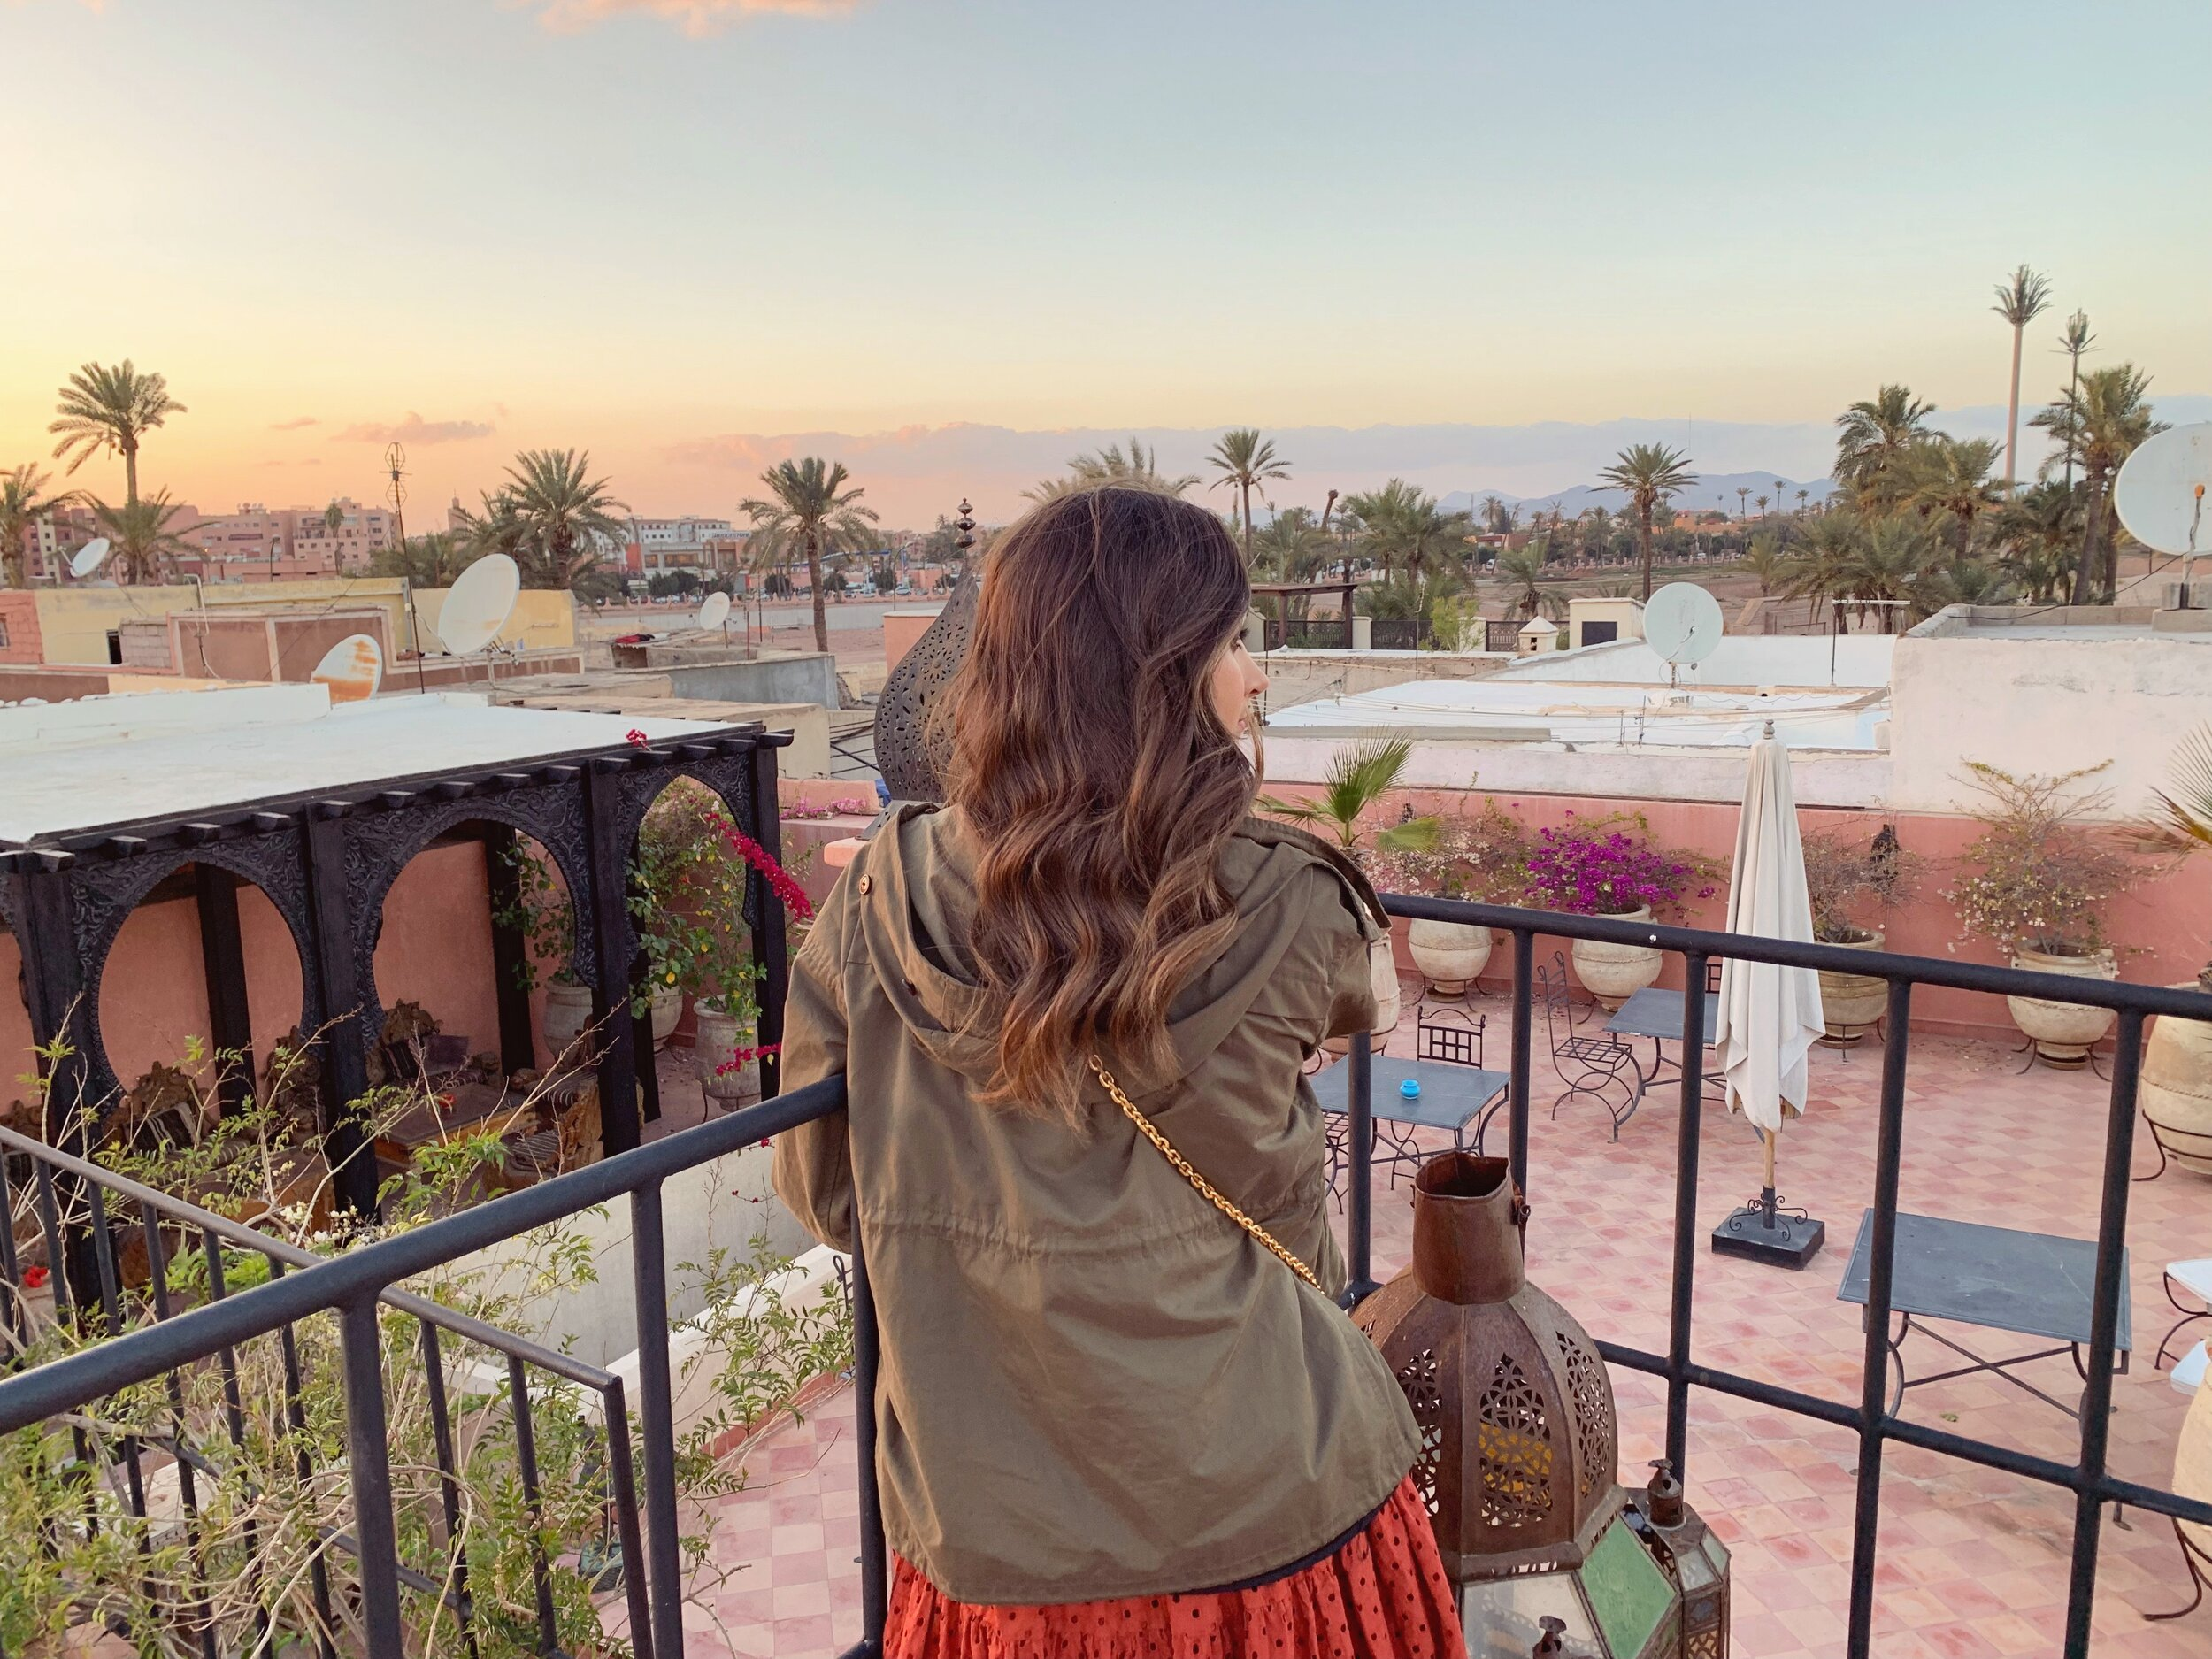 View from a riad in Marrakech Morocco - 7 Tips for Taking Photos in a Busy City